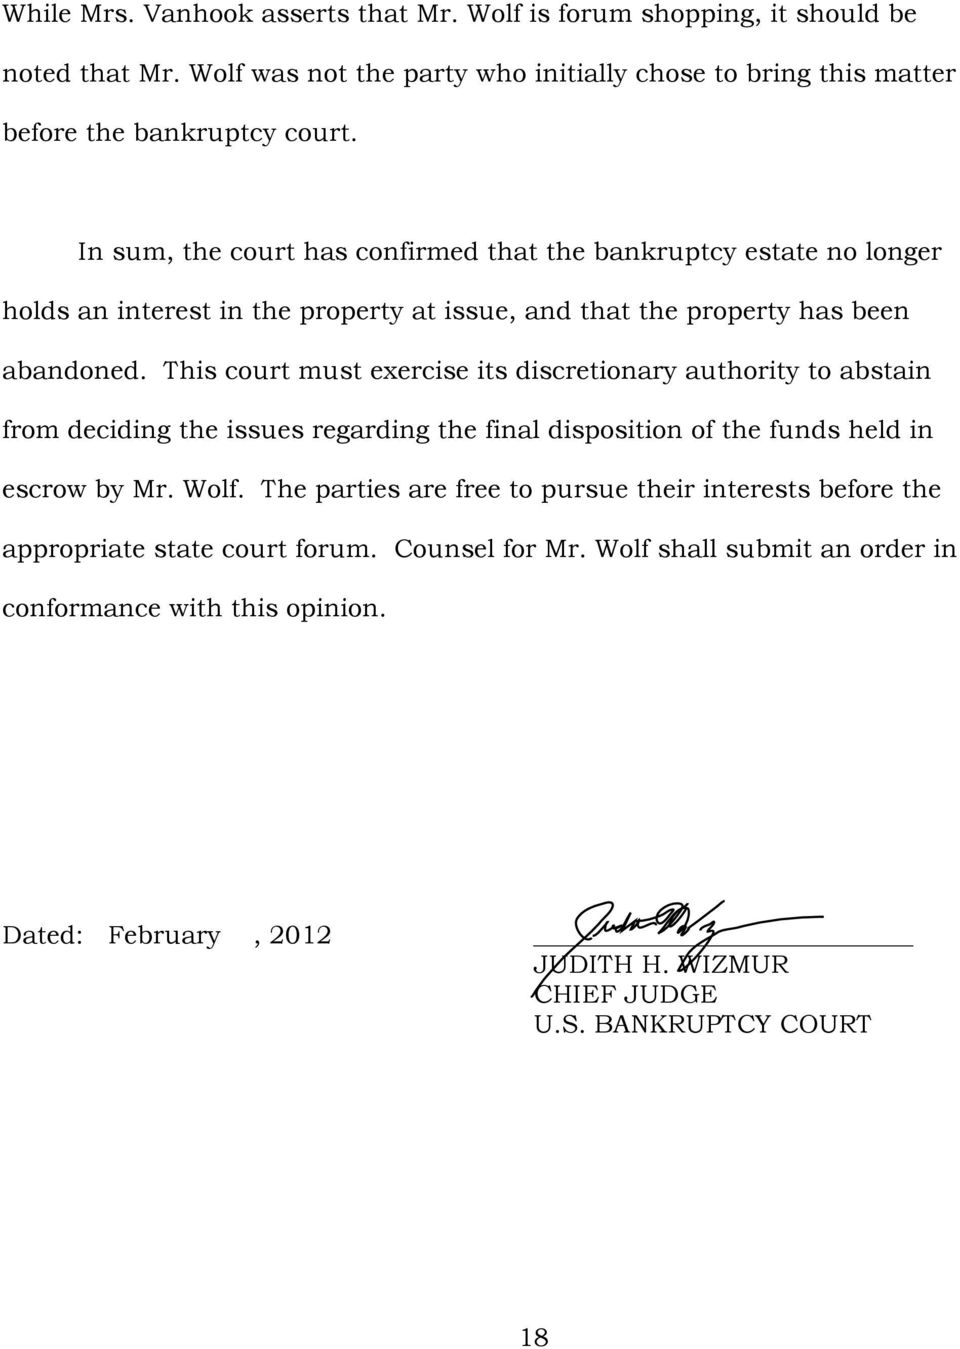 This court must exercise its discretionary authority to abstain from deciding the issues regarding the final disposition of the funds held in escrow by Mr. Wolf.